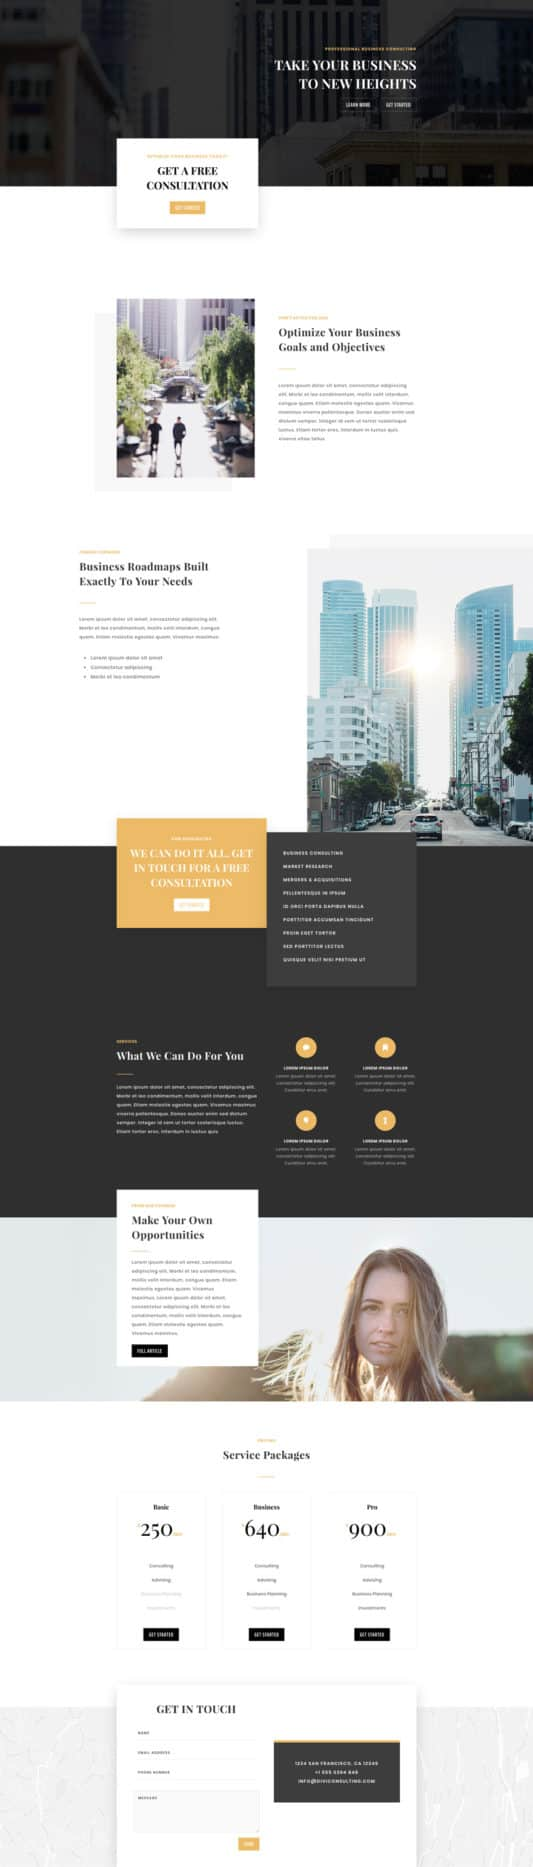 The Business Consultant Page Style: Homepage Design 1